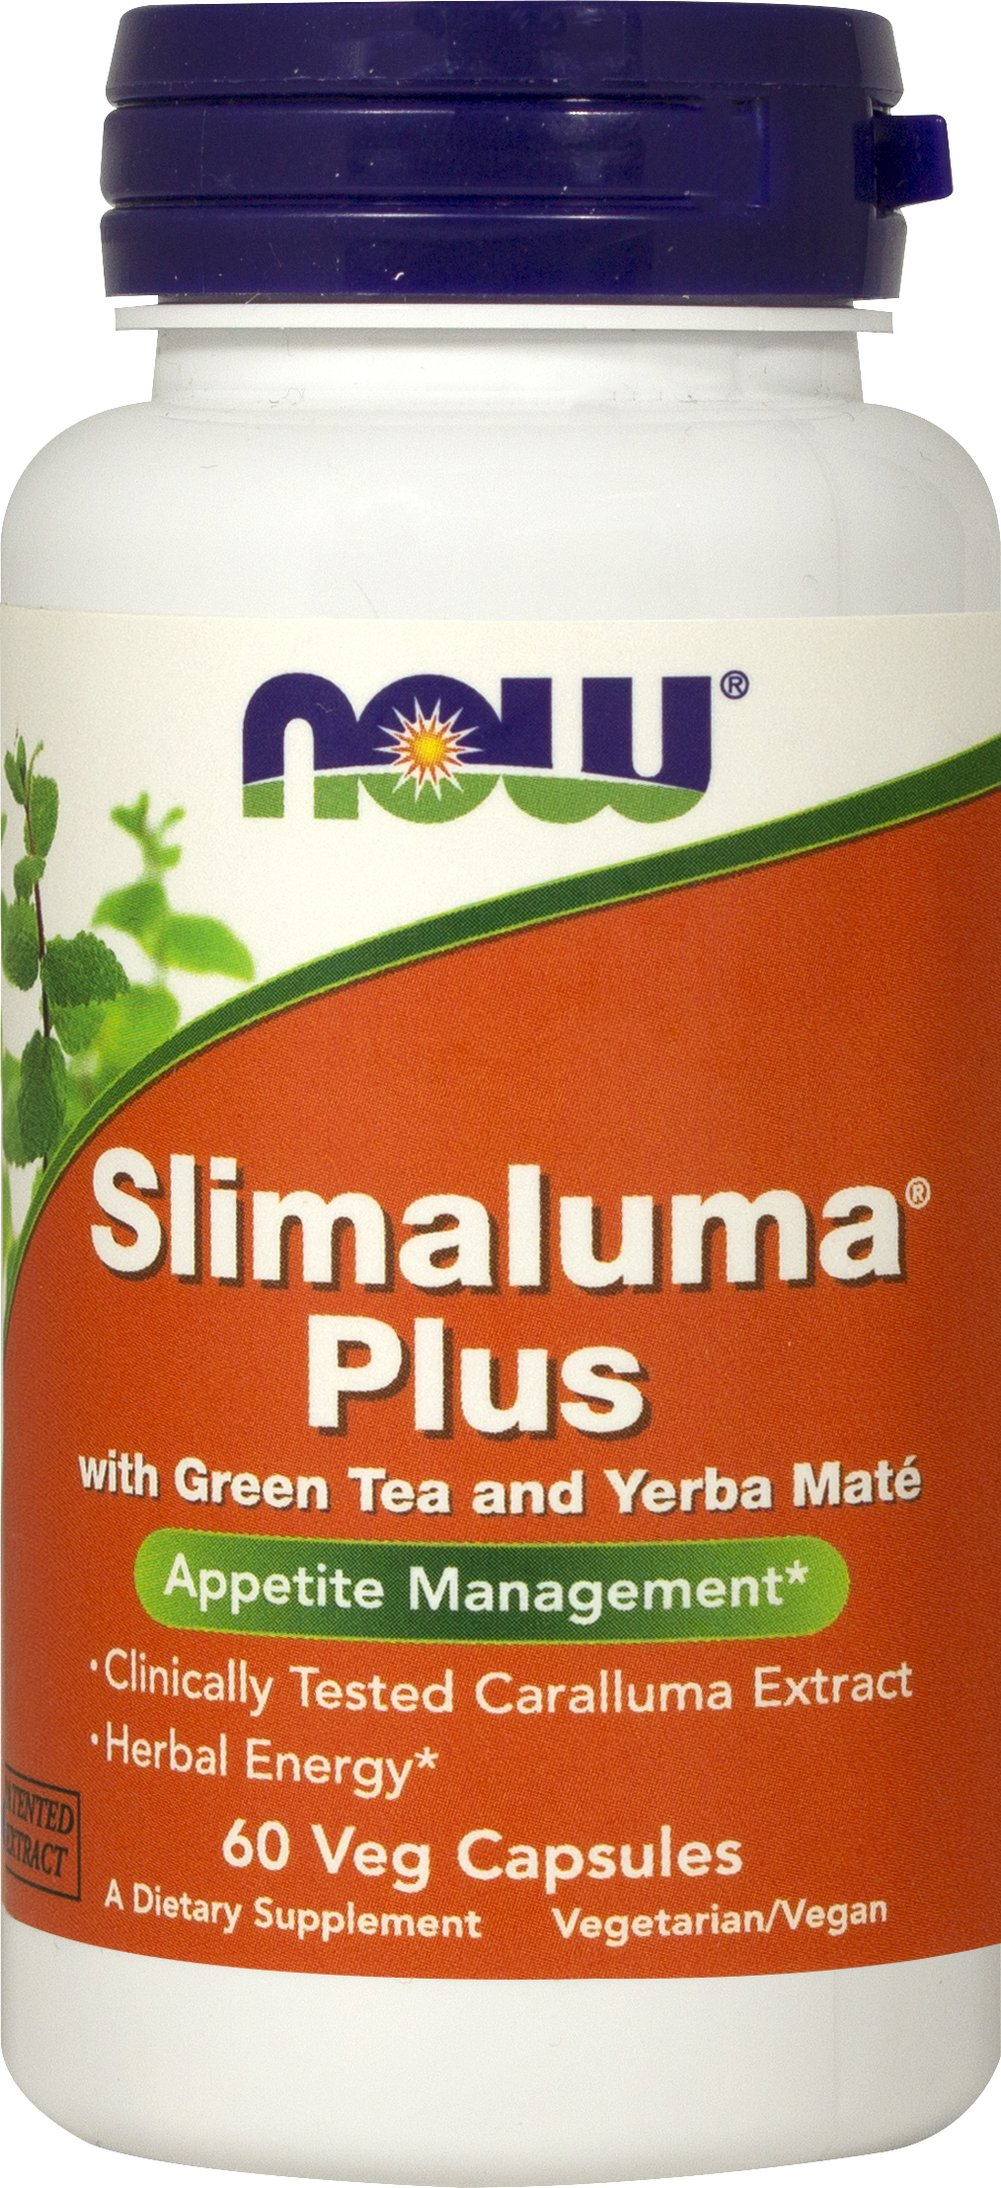 Slimaluma Plus <p><strong> From the Manufacturer's label:</strong></p><p>With Green Tea and Yerba Maté</p><p>NOW® Slimaluma® Plus contains a patented extract of Caralluma Fimbriata, and edible succlent native to India.</p><p>NOW® Slimaluma® Plus also features the synergistic ingredients Green Tea Extract and Yerba Mate for their antioxidant and energizing effects.**</p><p>Manufactured by Now Foods</